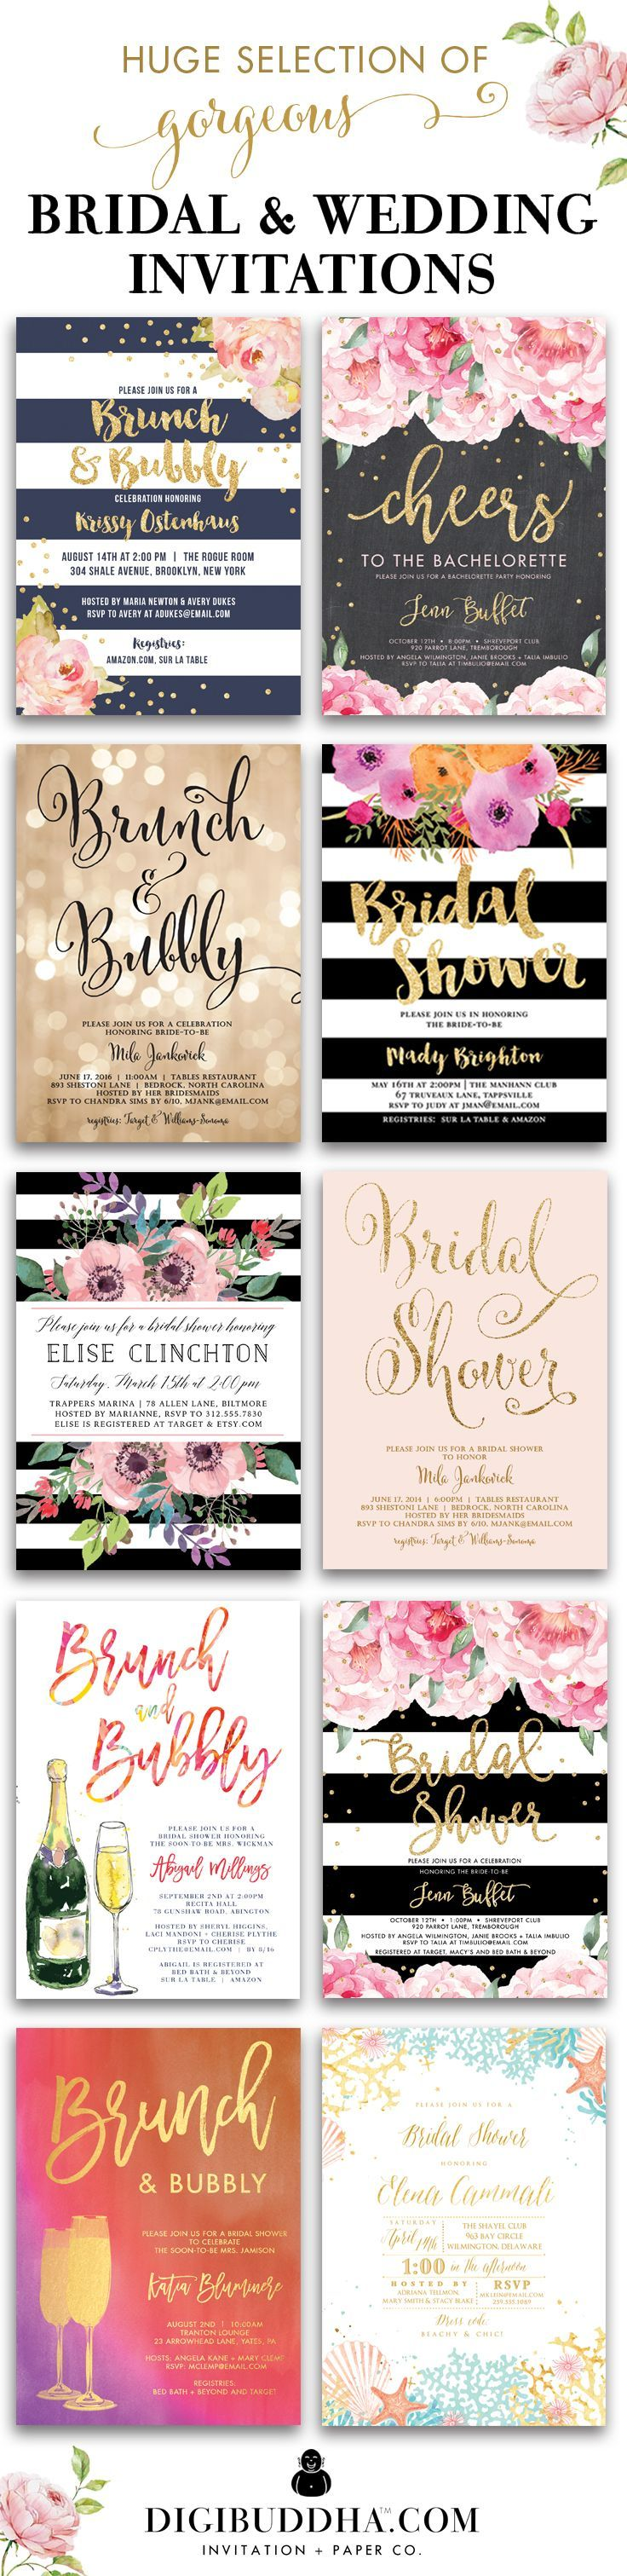 bridal shower invitation quote ideas%0A Huge selection of original trendsetting bridal shower invitations and wedding  invitations in styles ranging